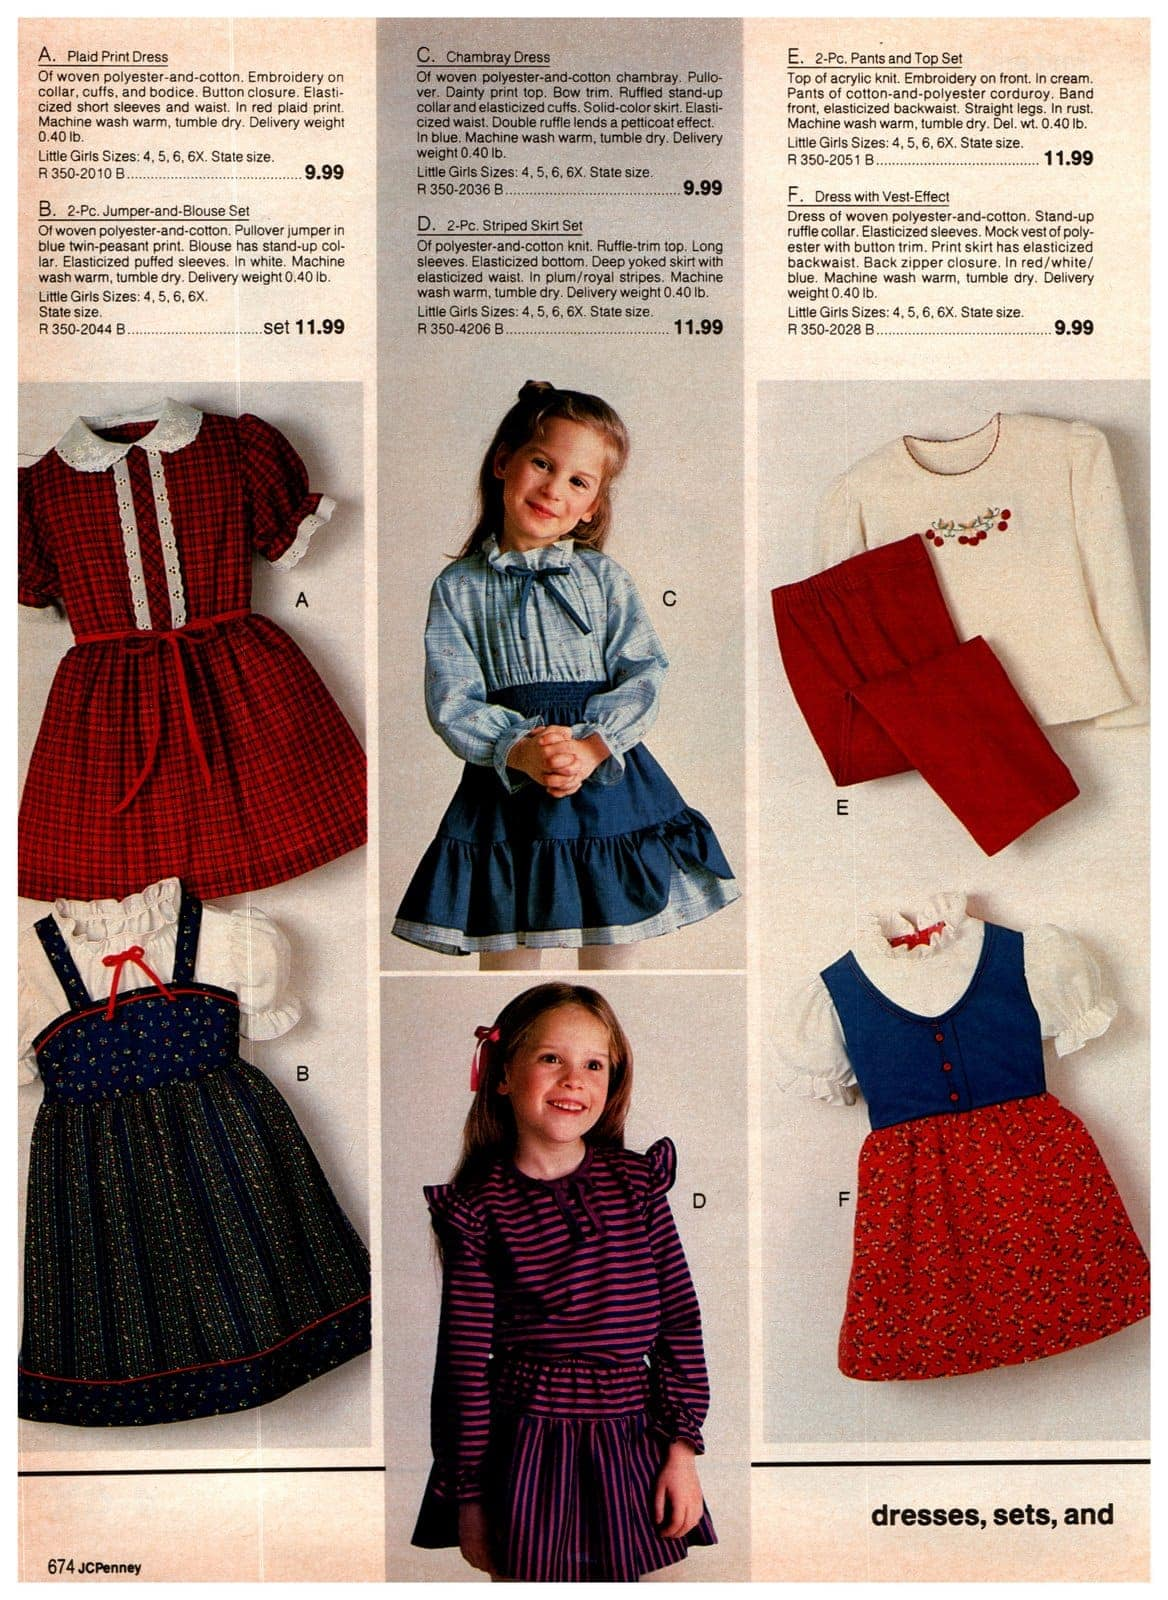 Little dresses and top and pants sets for kids